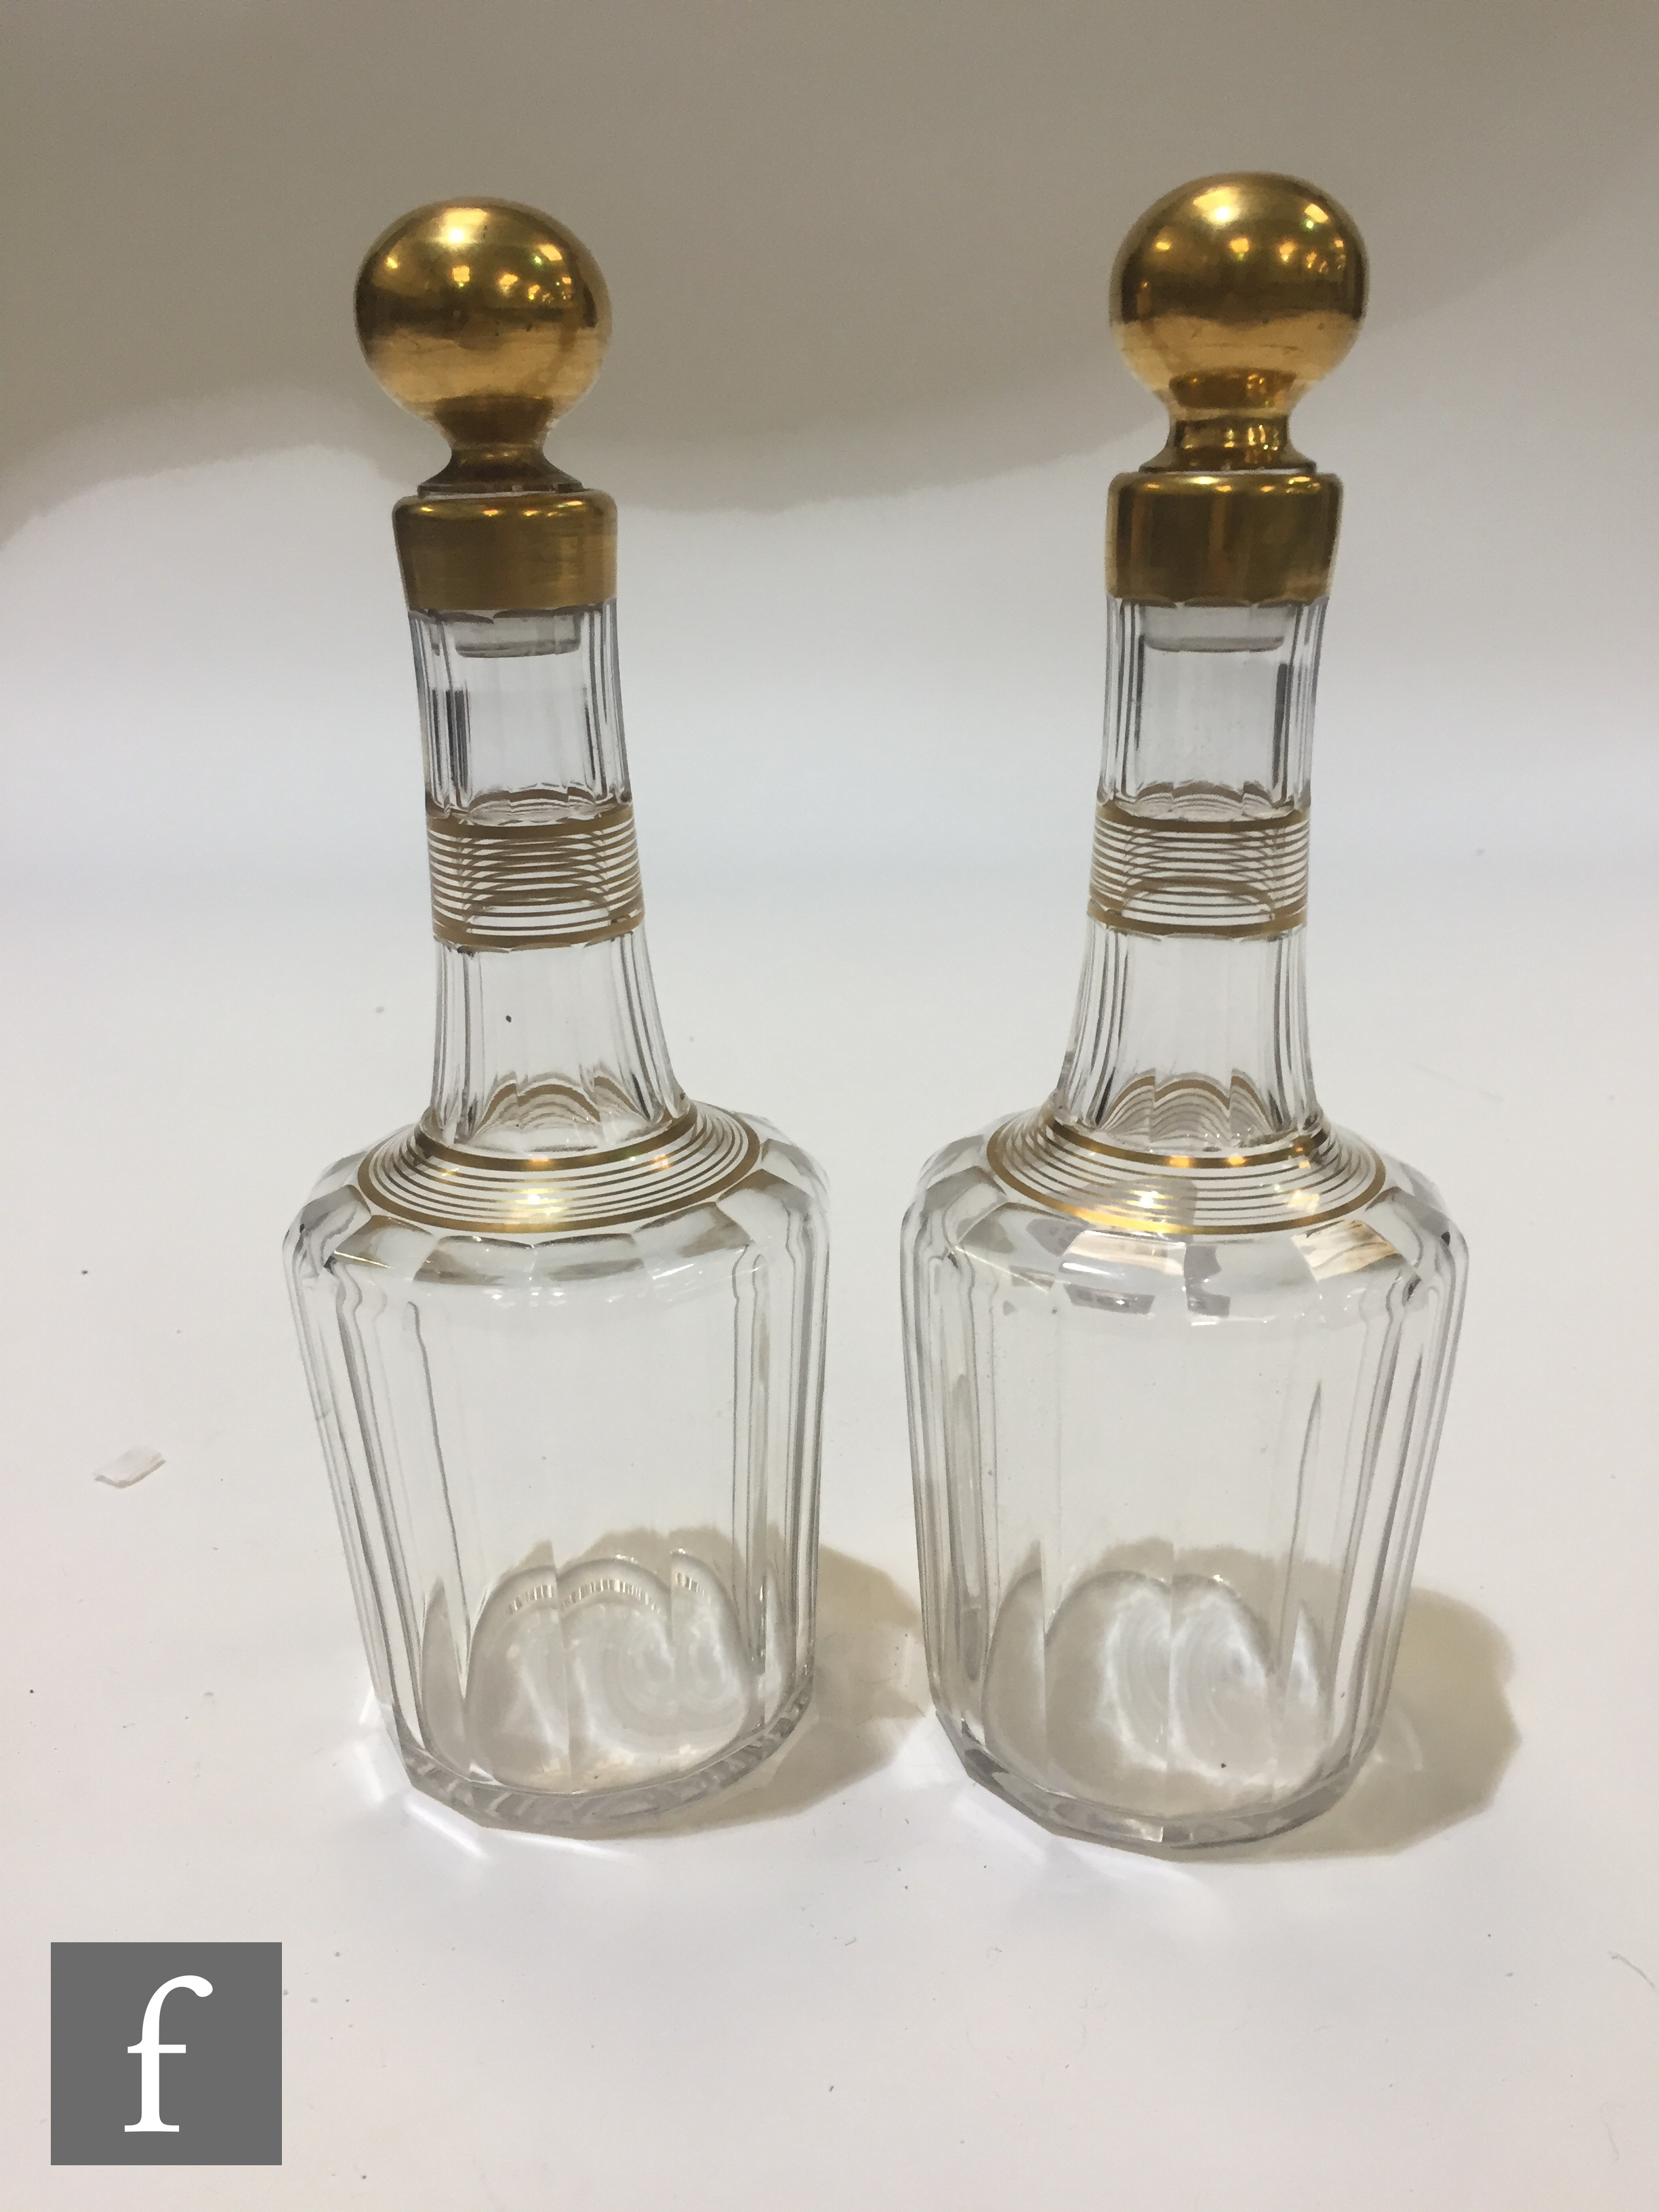 A pair of late 19th Century Baccarat crystal spirit decanters of slice cut shouldered form with a - Image 3 of 6